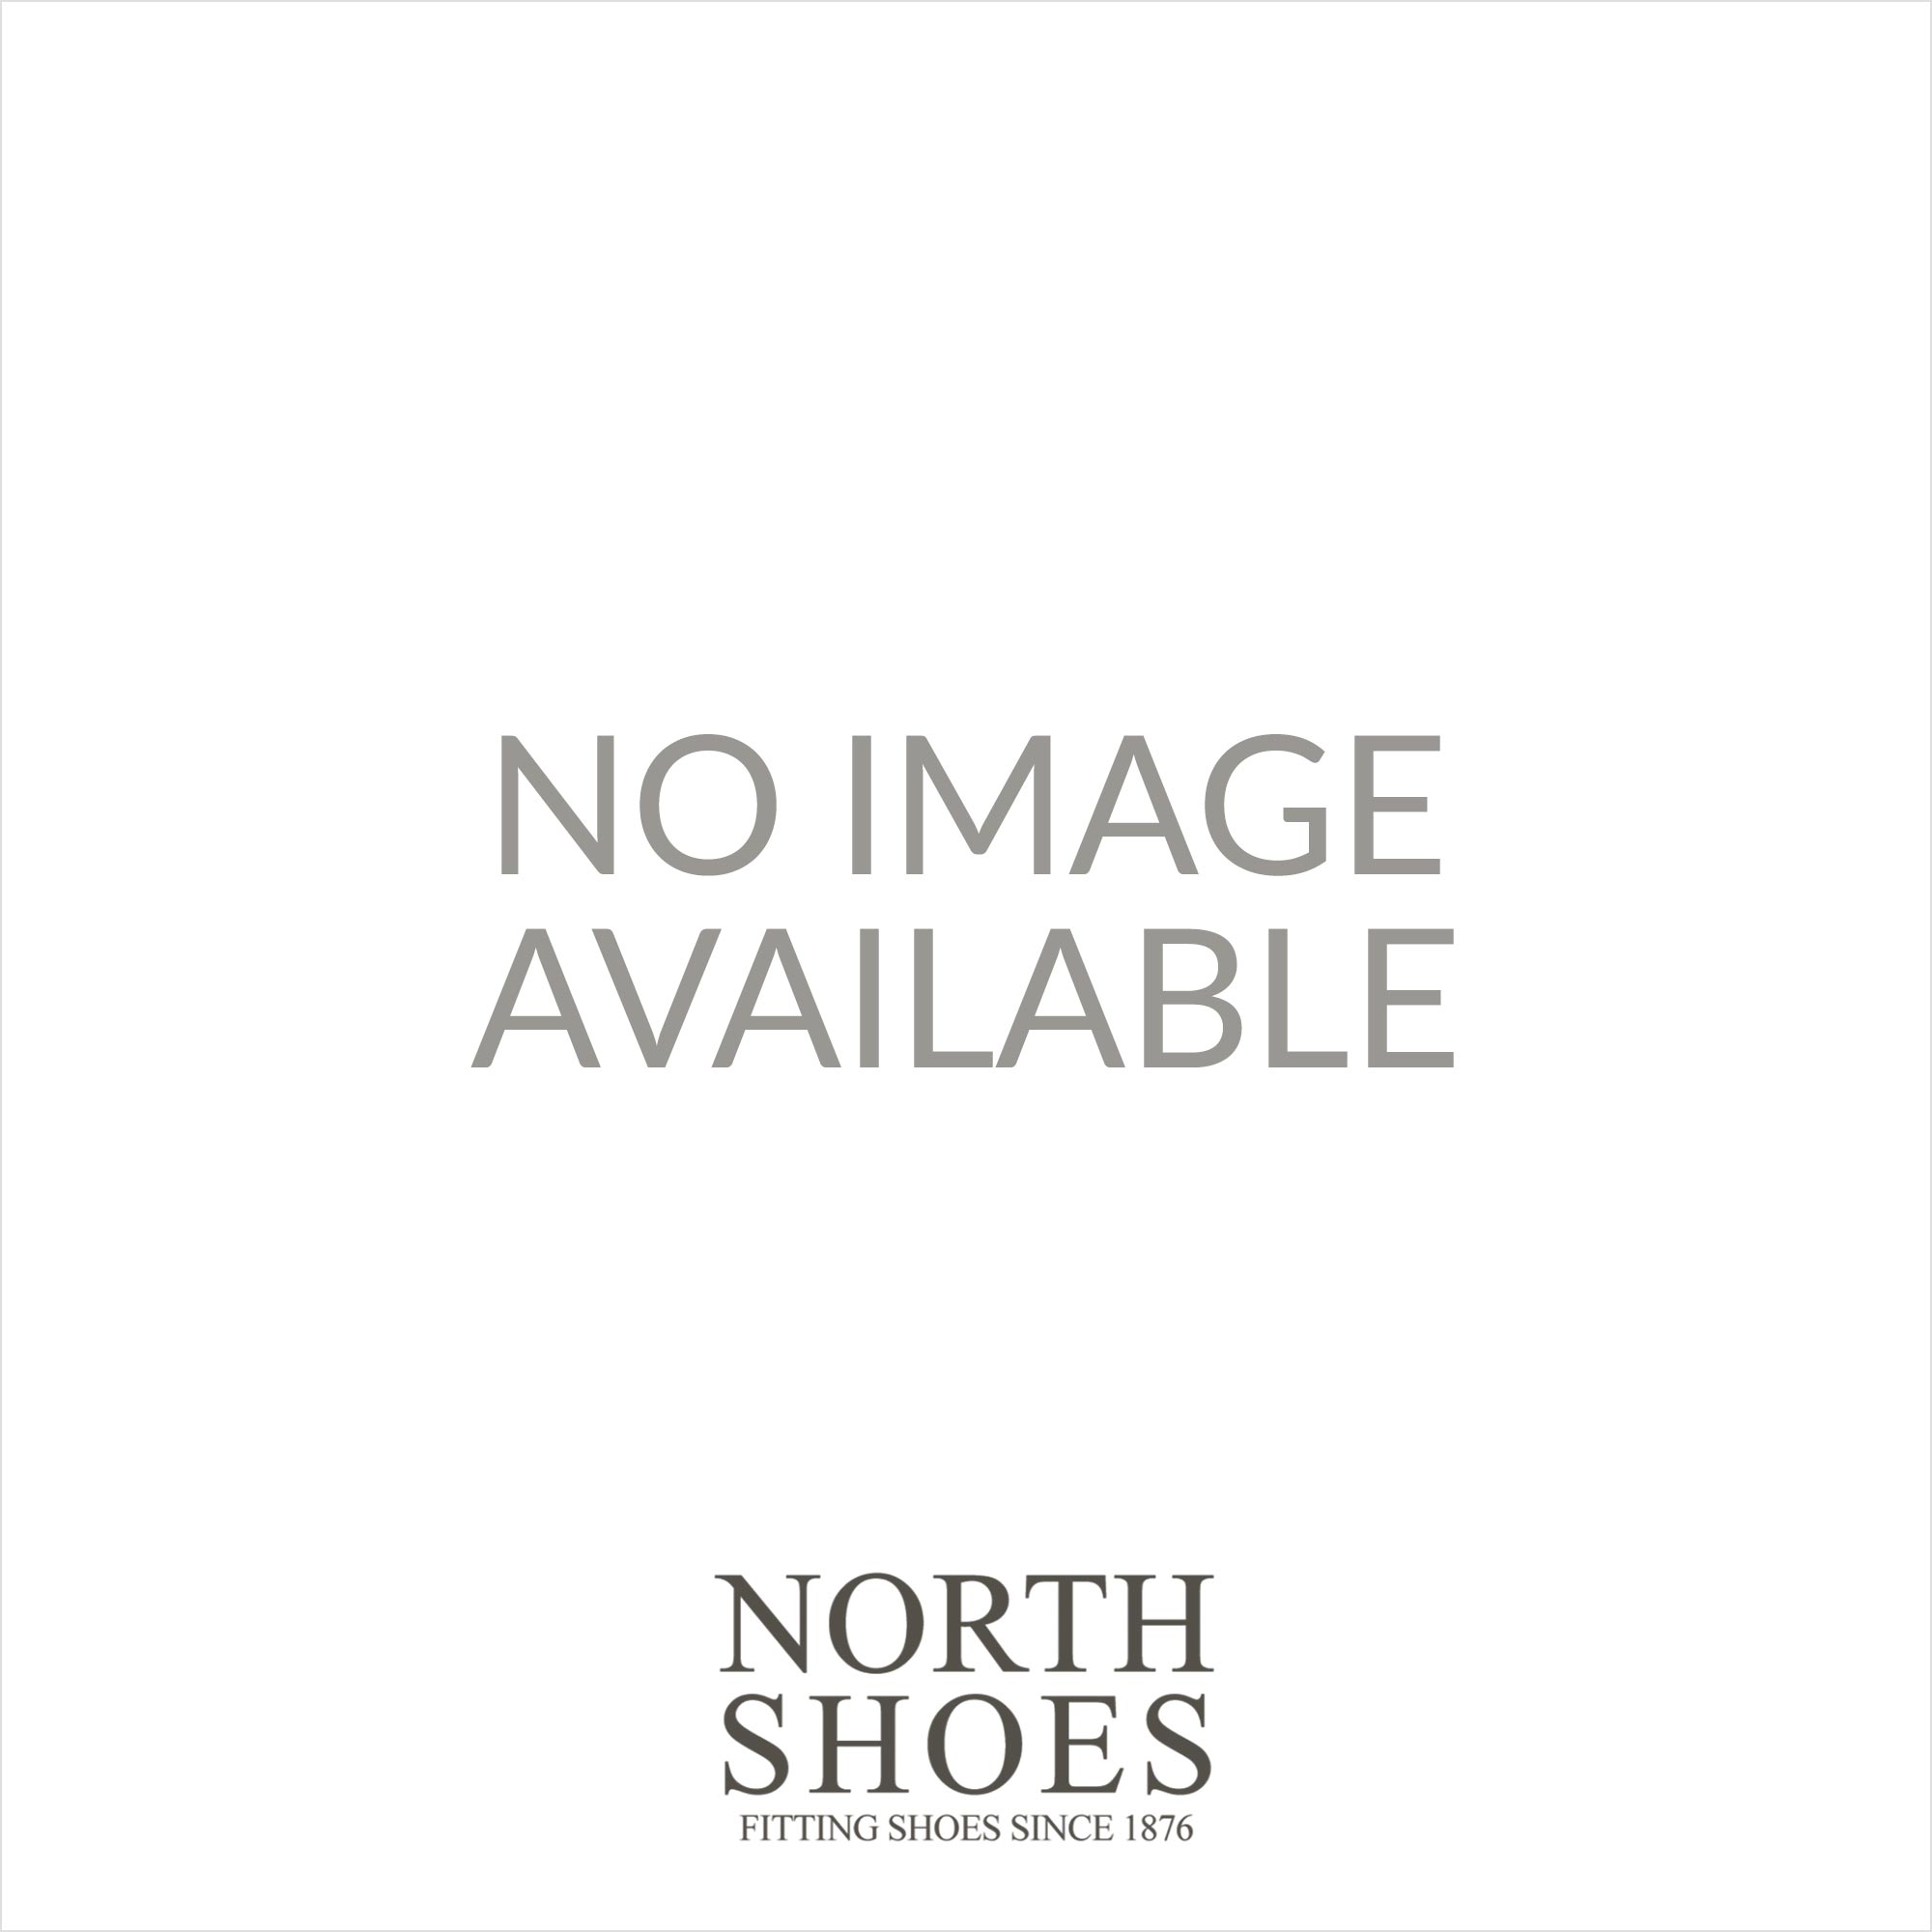 da13fe903650 Fitflop Shimmy Pale Gold Womens Sandal - Fitflop from North Shoes UK